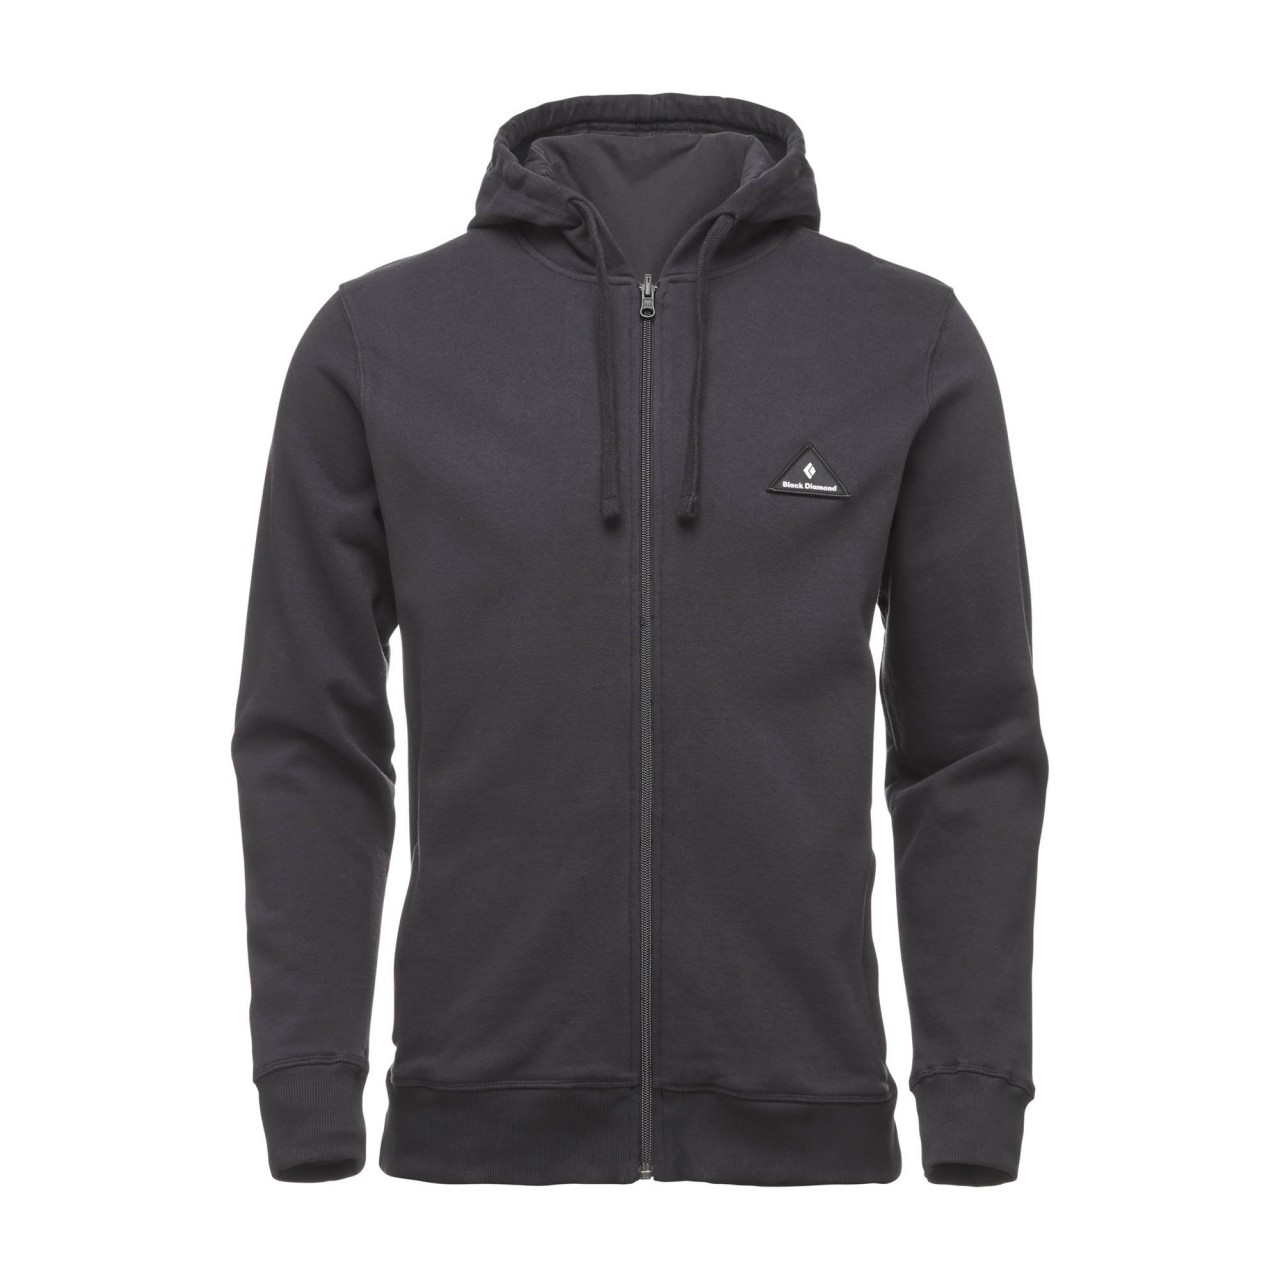 e0c94d44915 The Black Diamond BD Logo Hoody is a classic style of hoody with a full  length zip